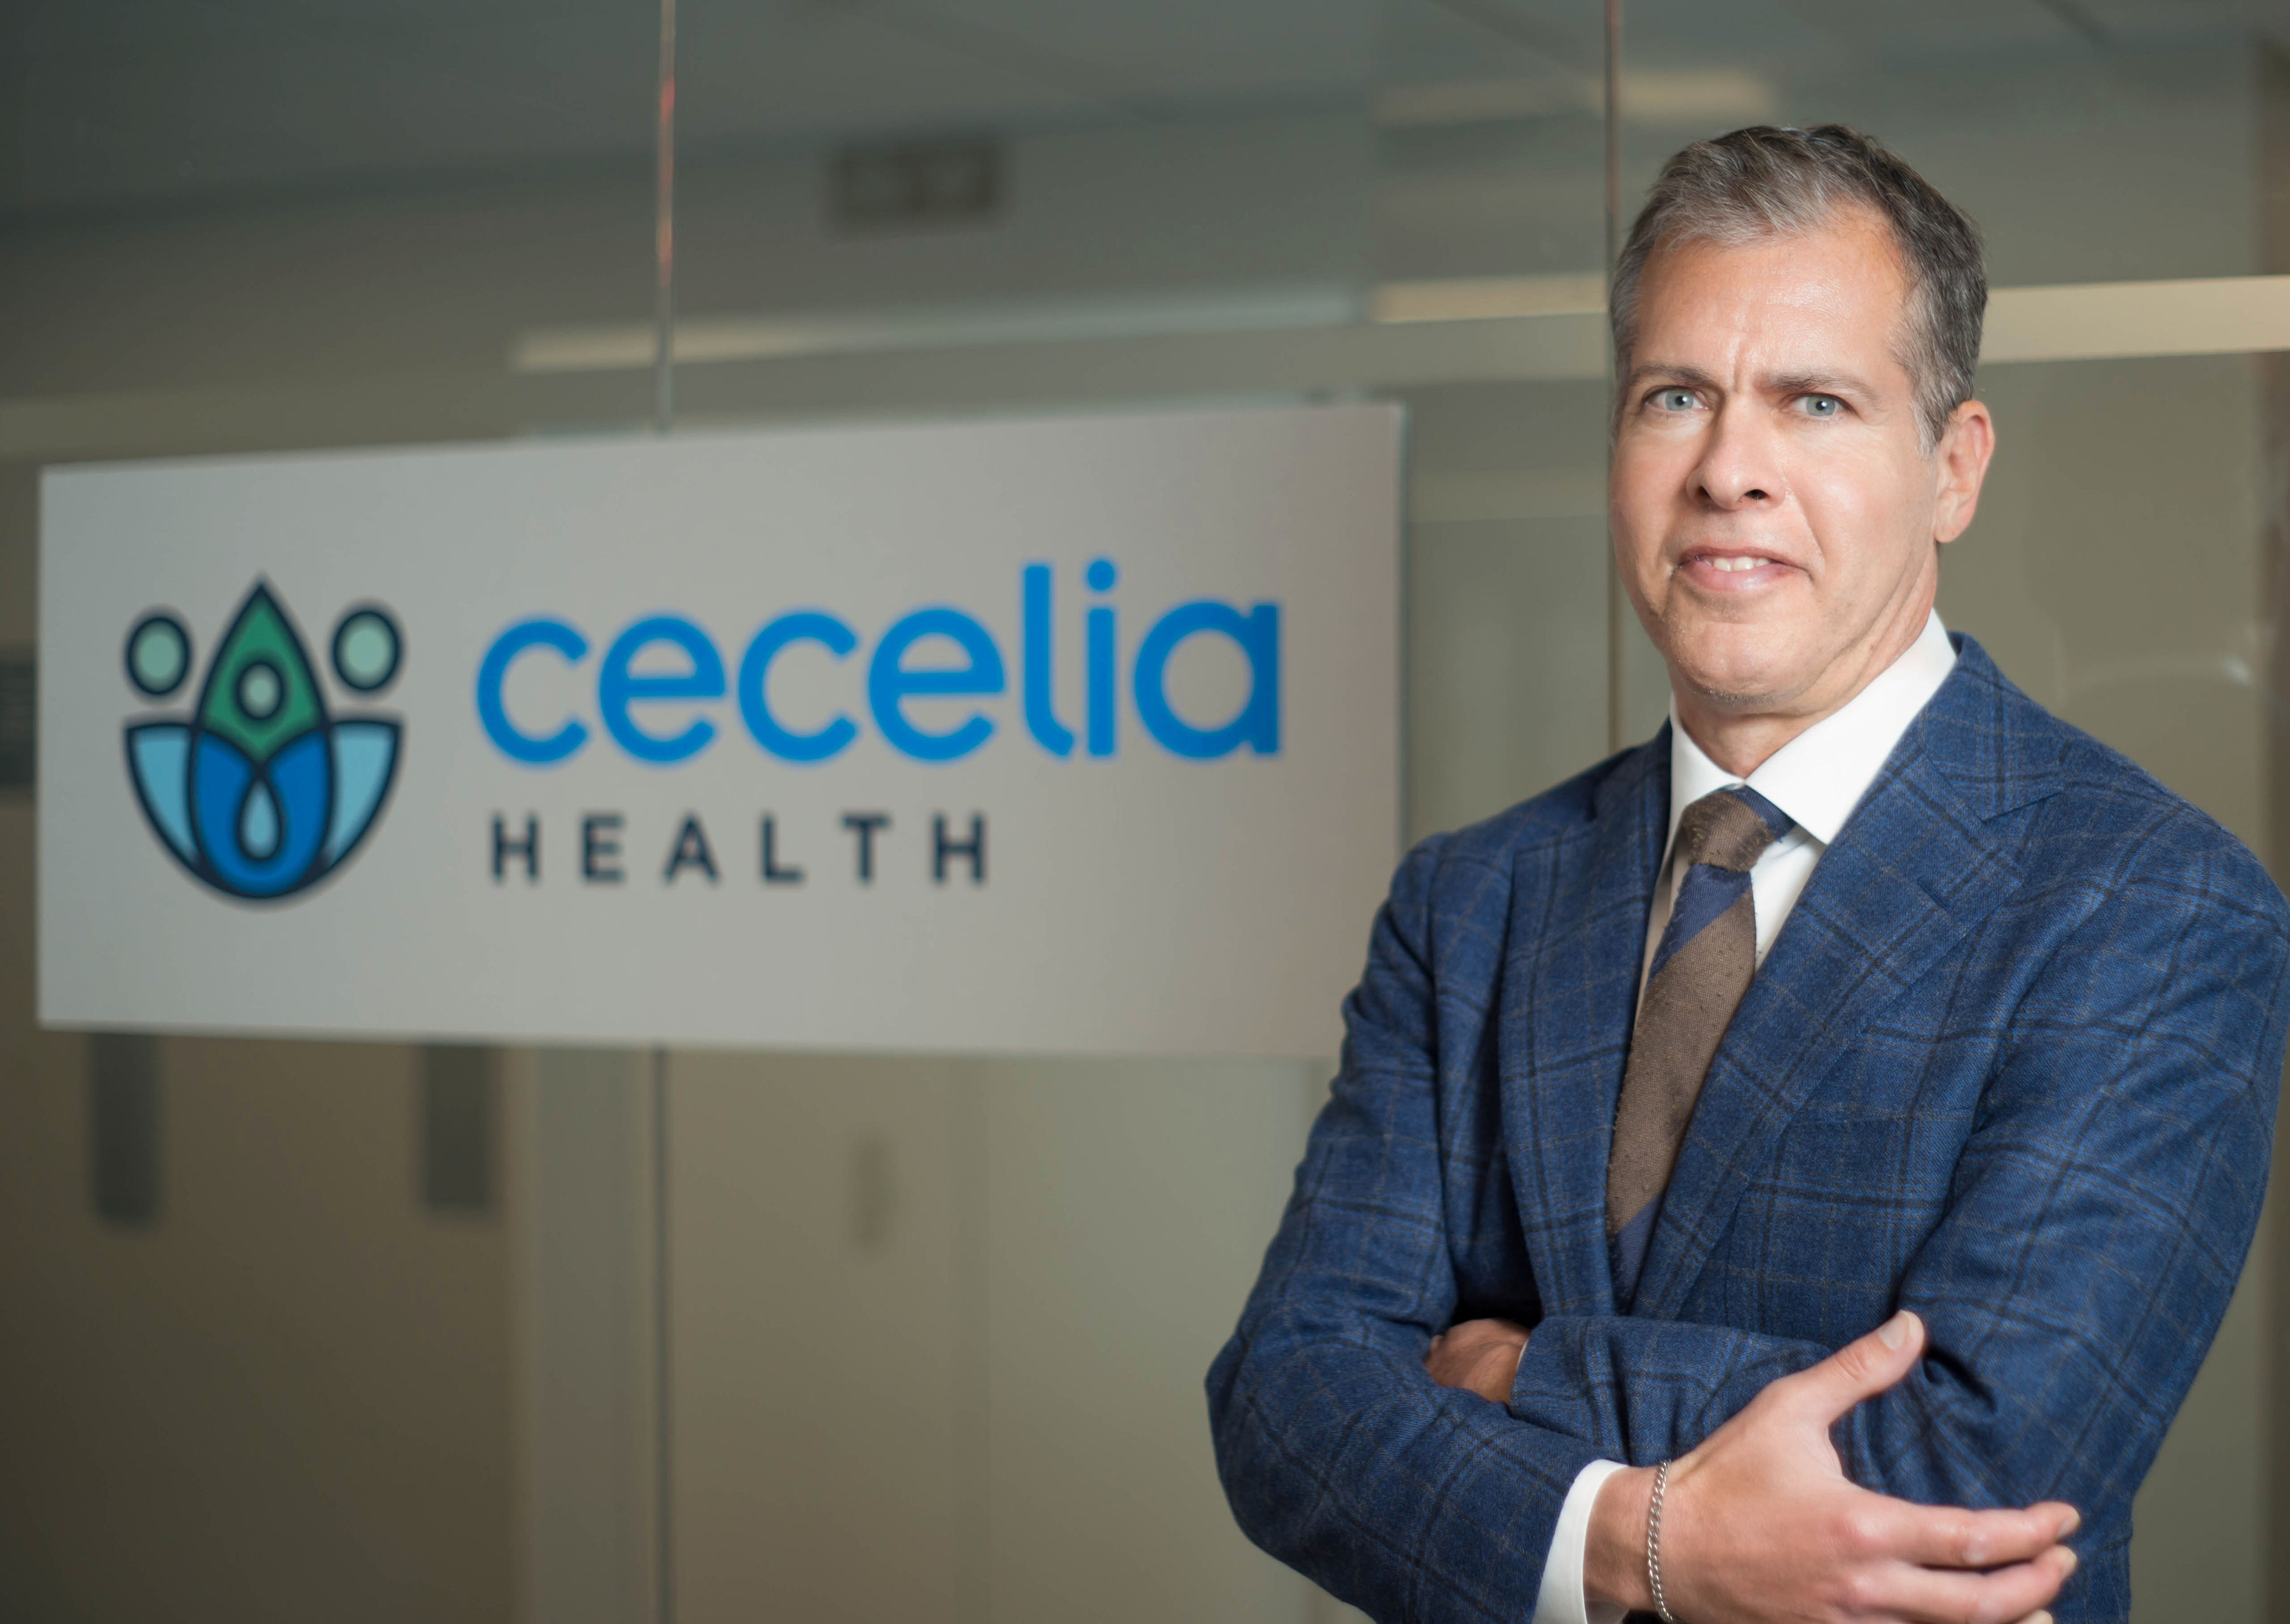 Cecelia Health CEO to Moderate Panel at MM&M Spring Conference